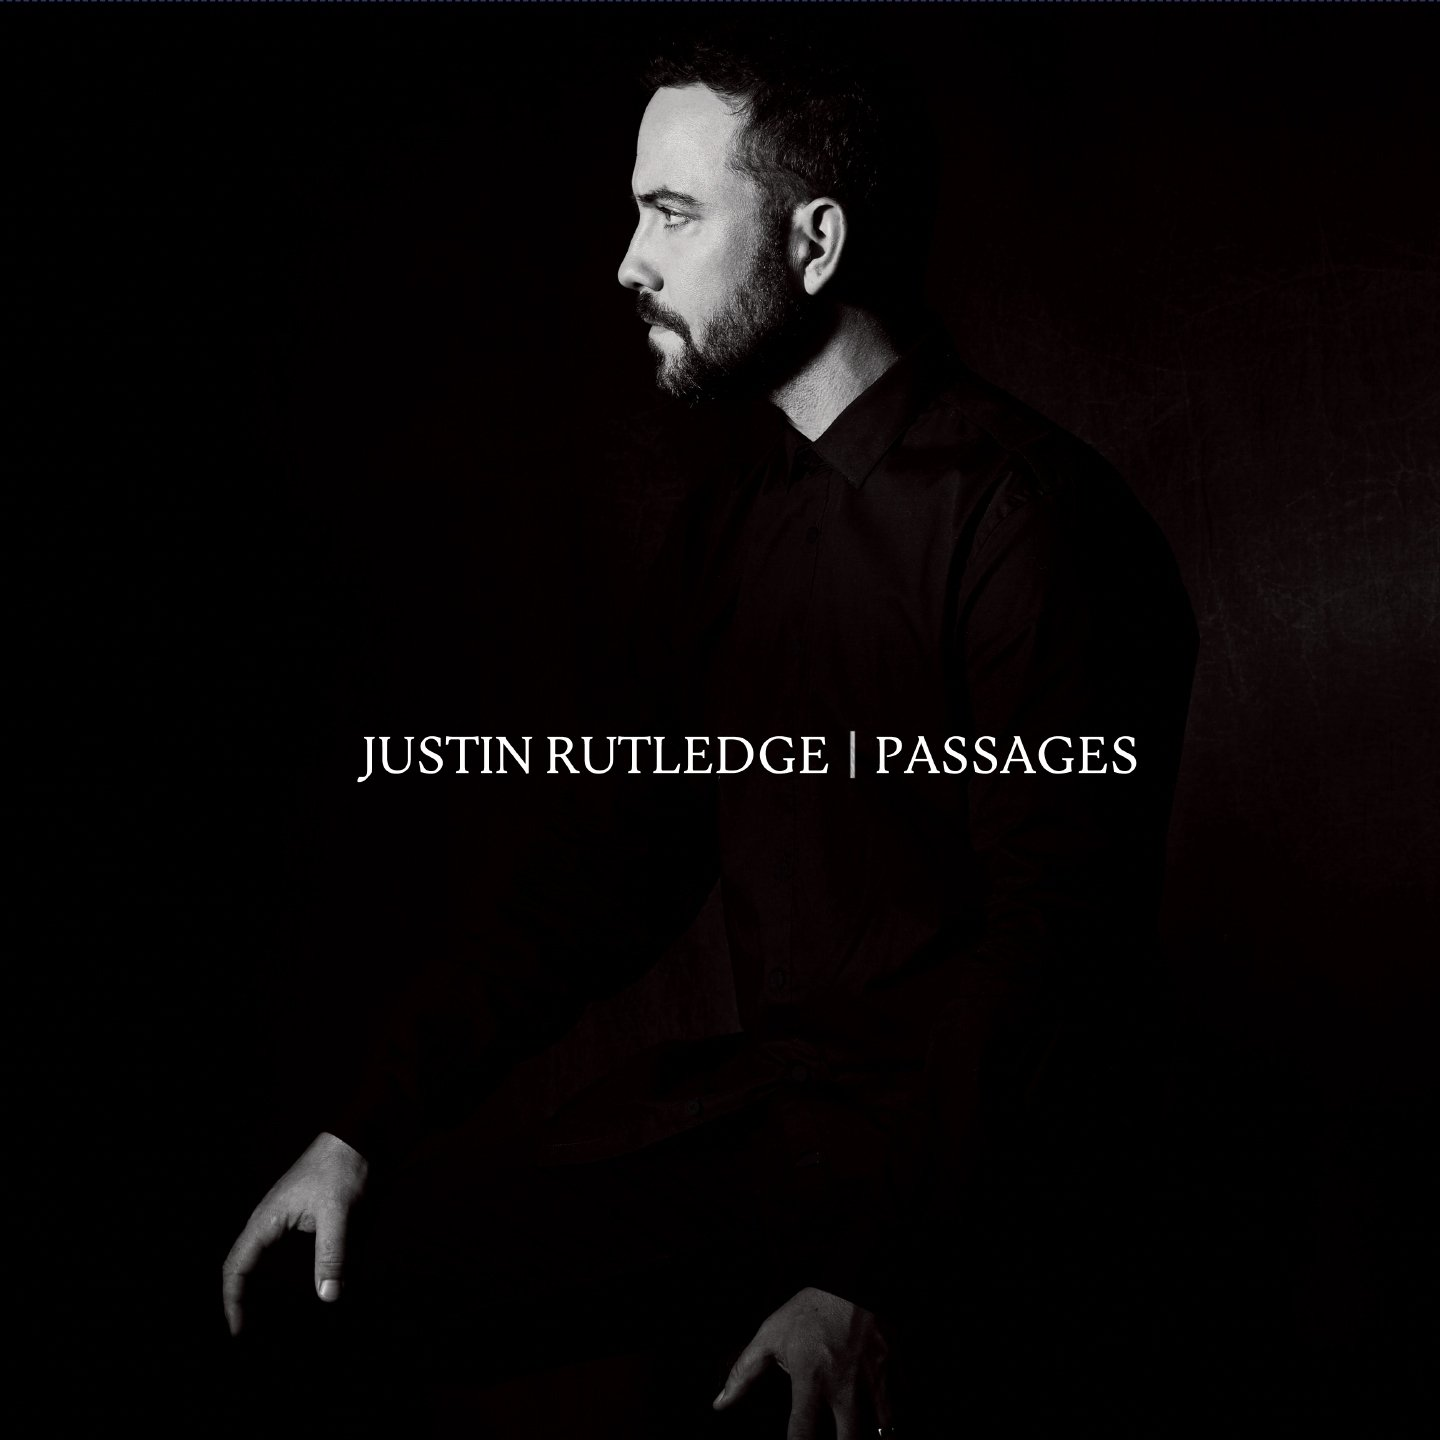 Review: Justin Rutledge turns the pages in 'Passages'